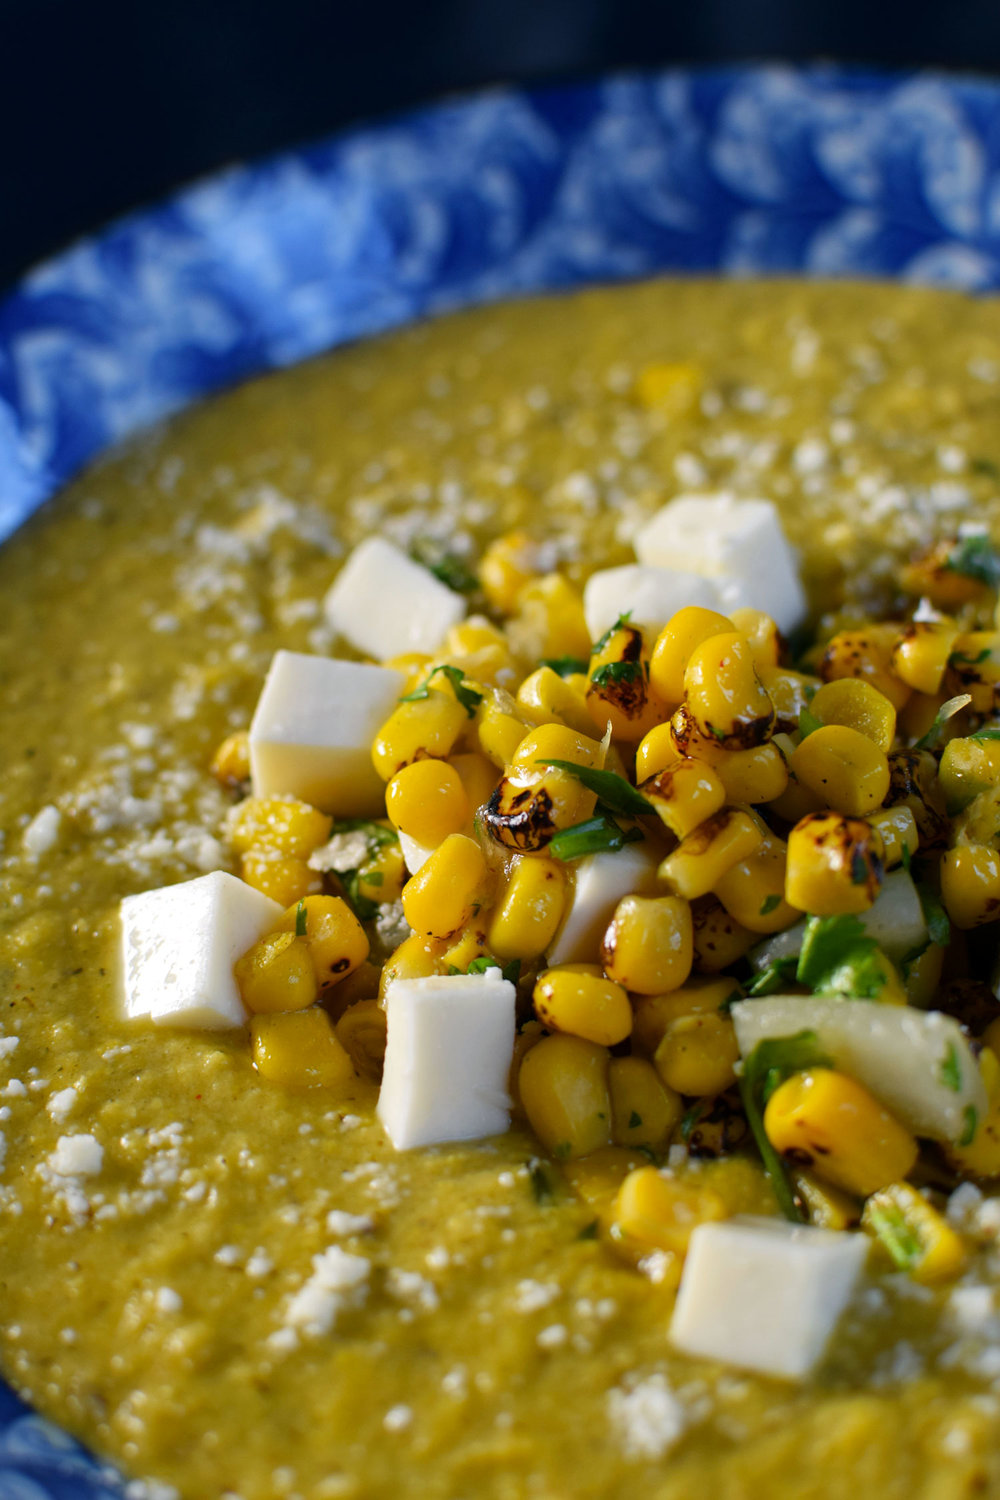 This mexican street food-style corn soup, inspired by elote, is topped with a delicious mix of bright flavors like charred corn, cilantro, and lime juice. The best summer souP! | themillennialmenu.com